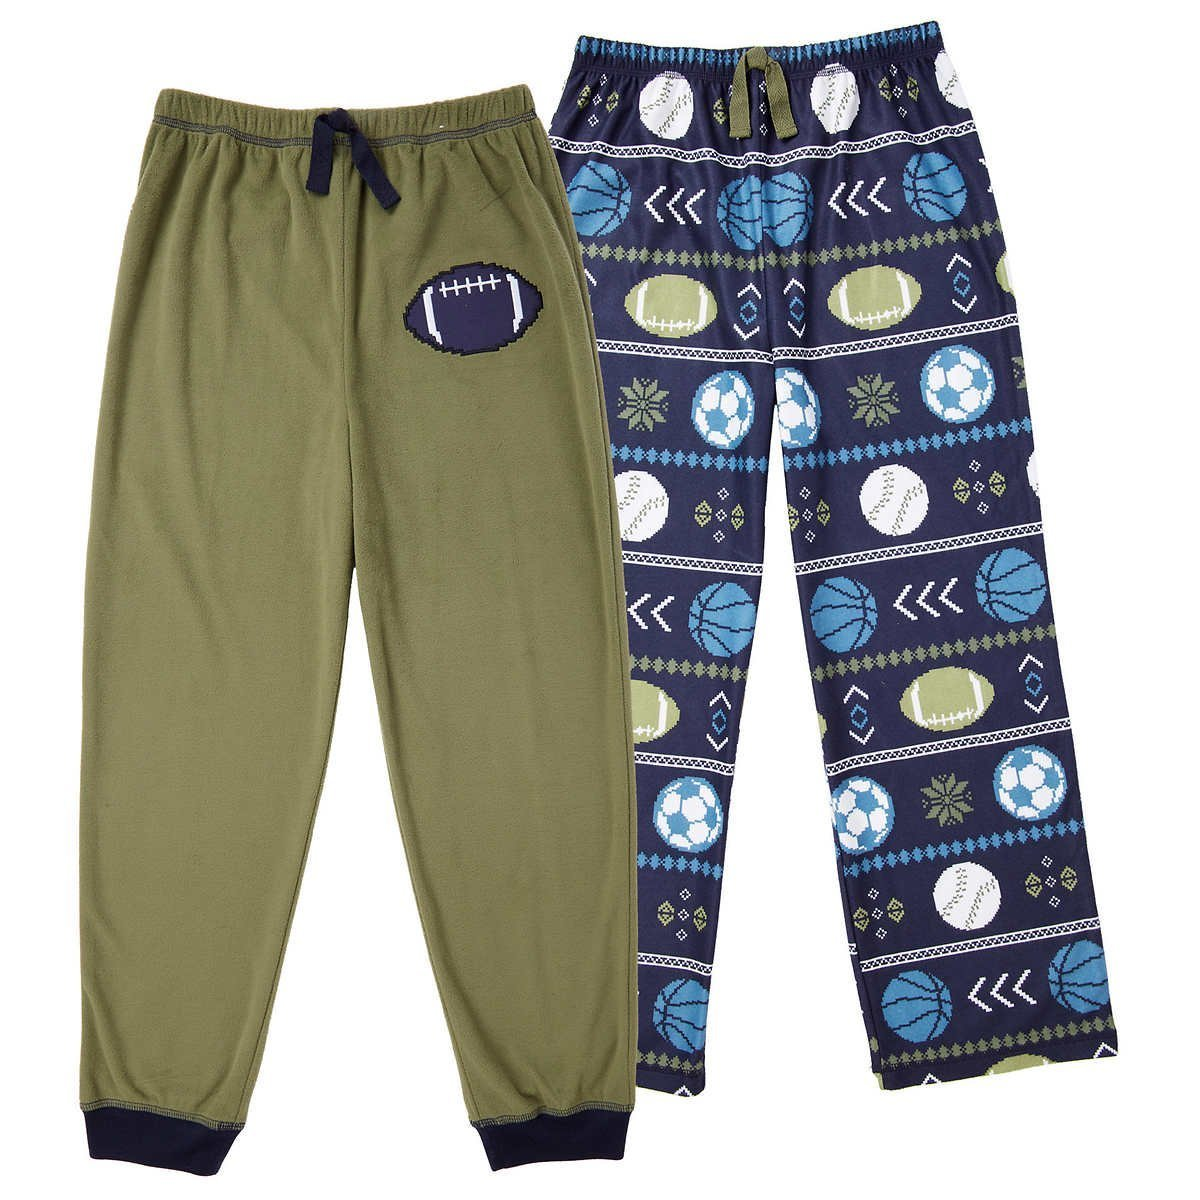 St. Eve Saint Eve Boys' Sleep Pant 2-Pack